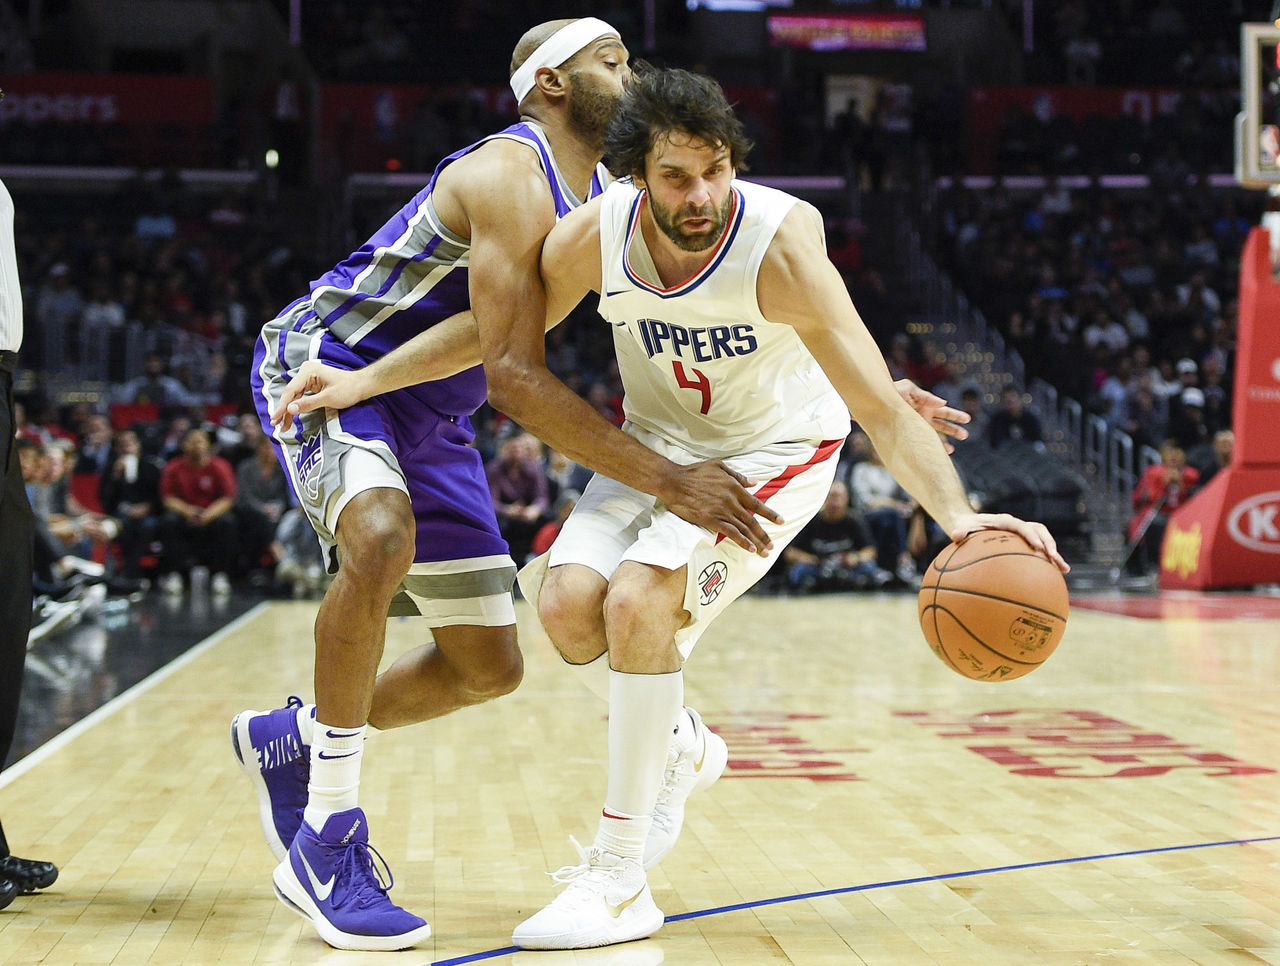 Cropped 2017 10 13t035354z 652691068 nocid rtrmadp 3 nba preseason sacramento kings at los angeles clippers